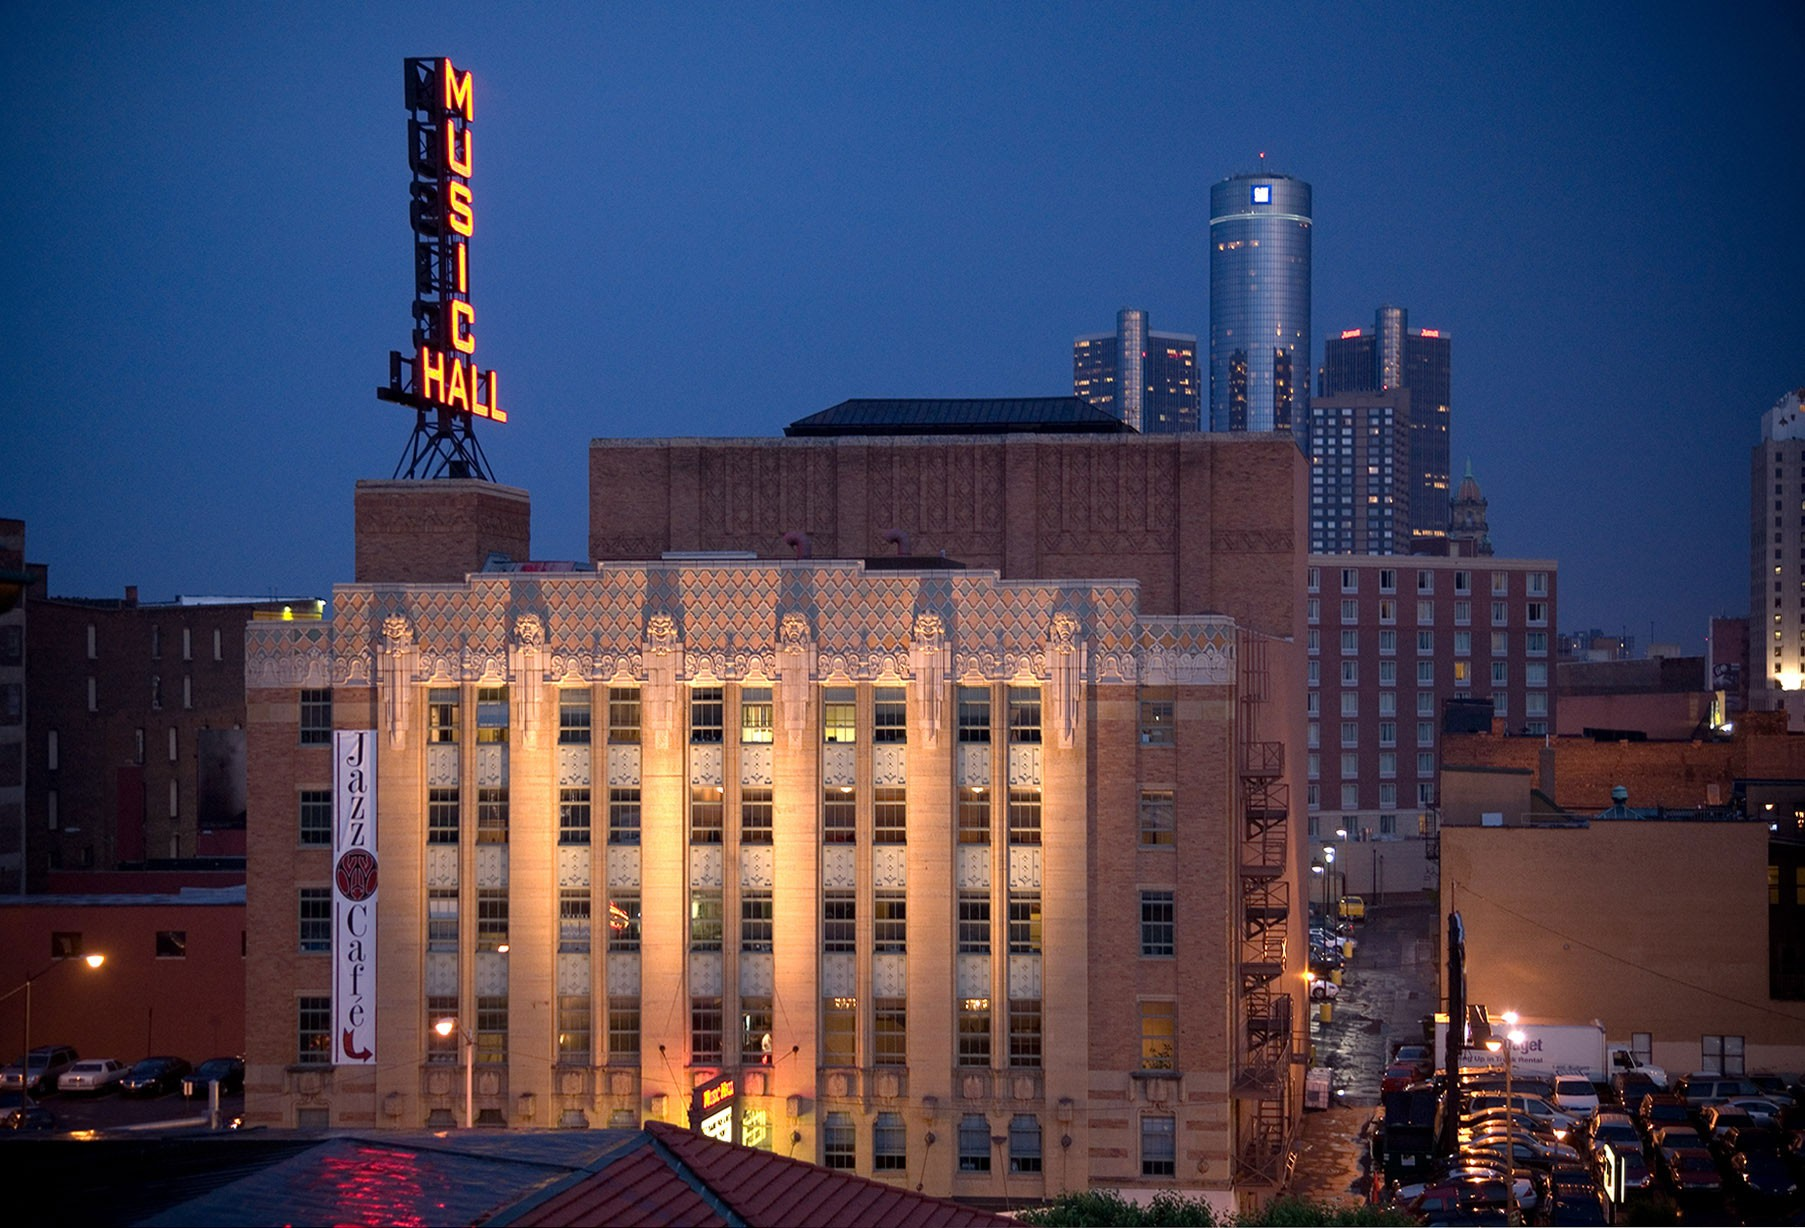 Detroits Music Hall Celebrate 90th Anniversary With Museum Archive